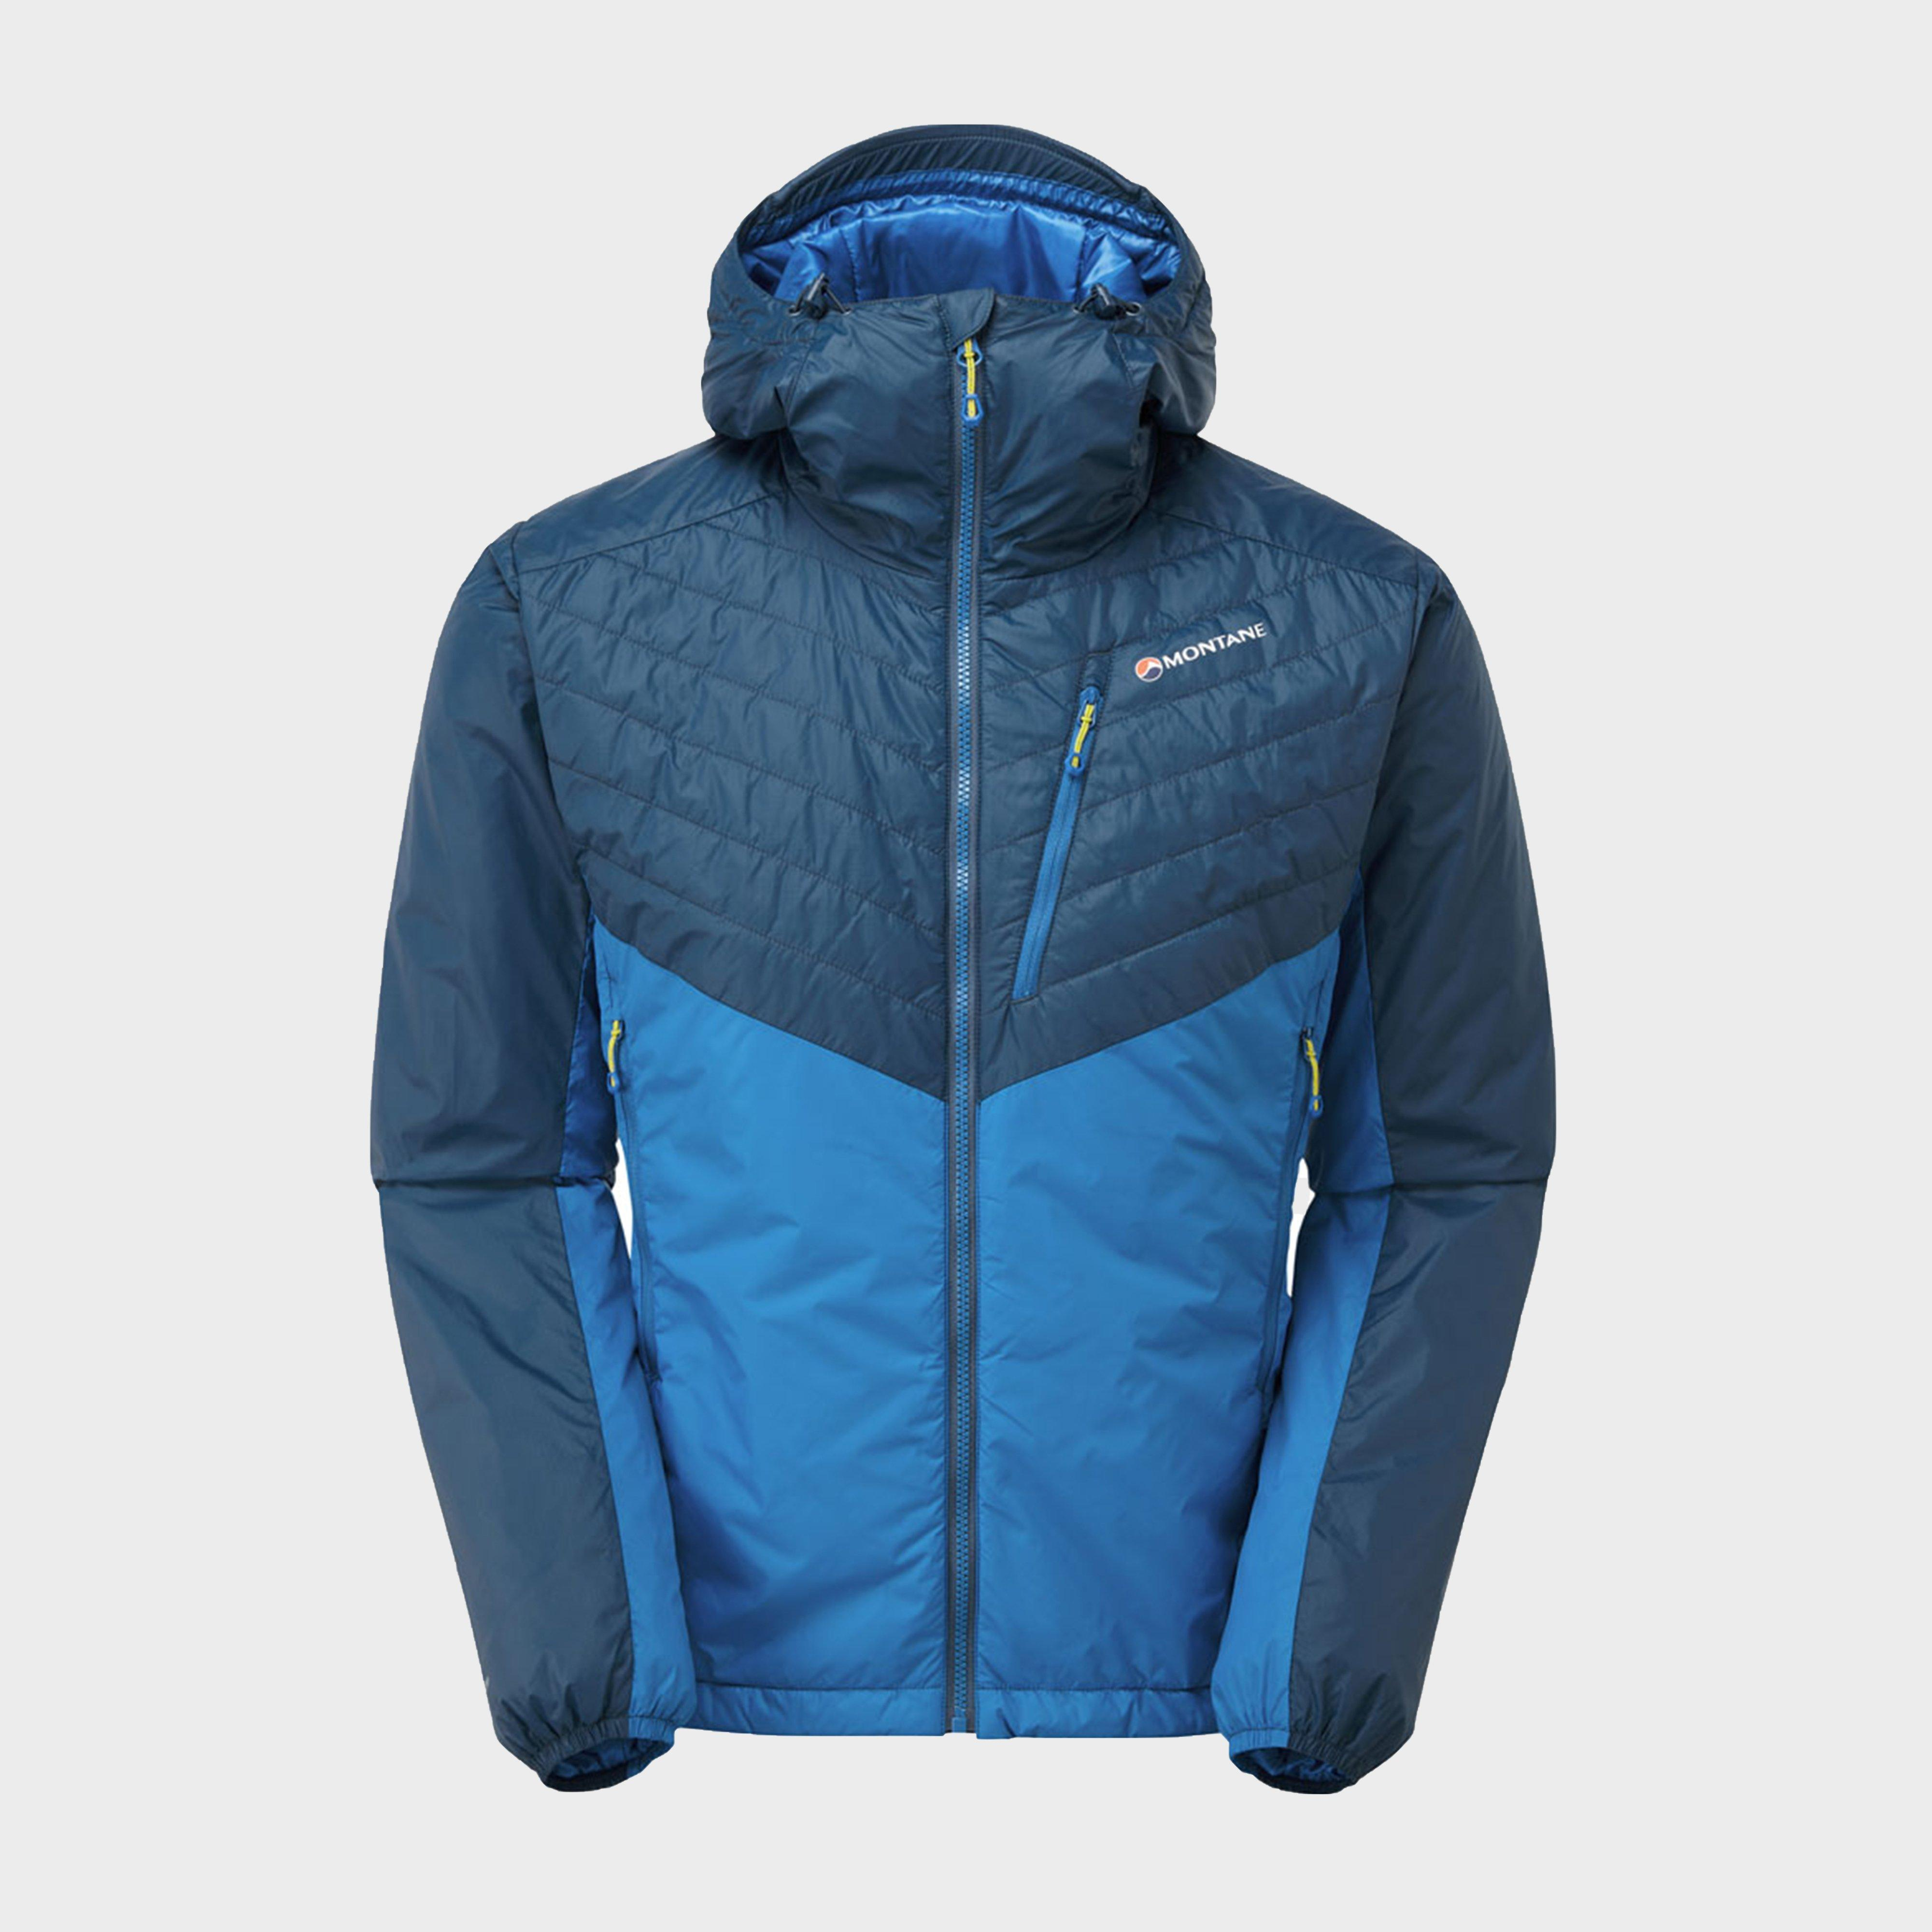 Montane Montane Prism Mens Insulated Jacket